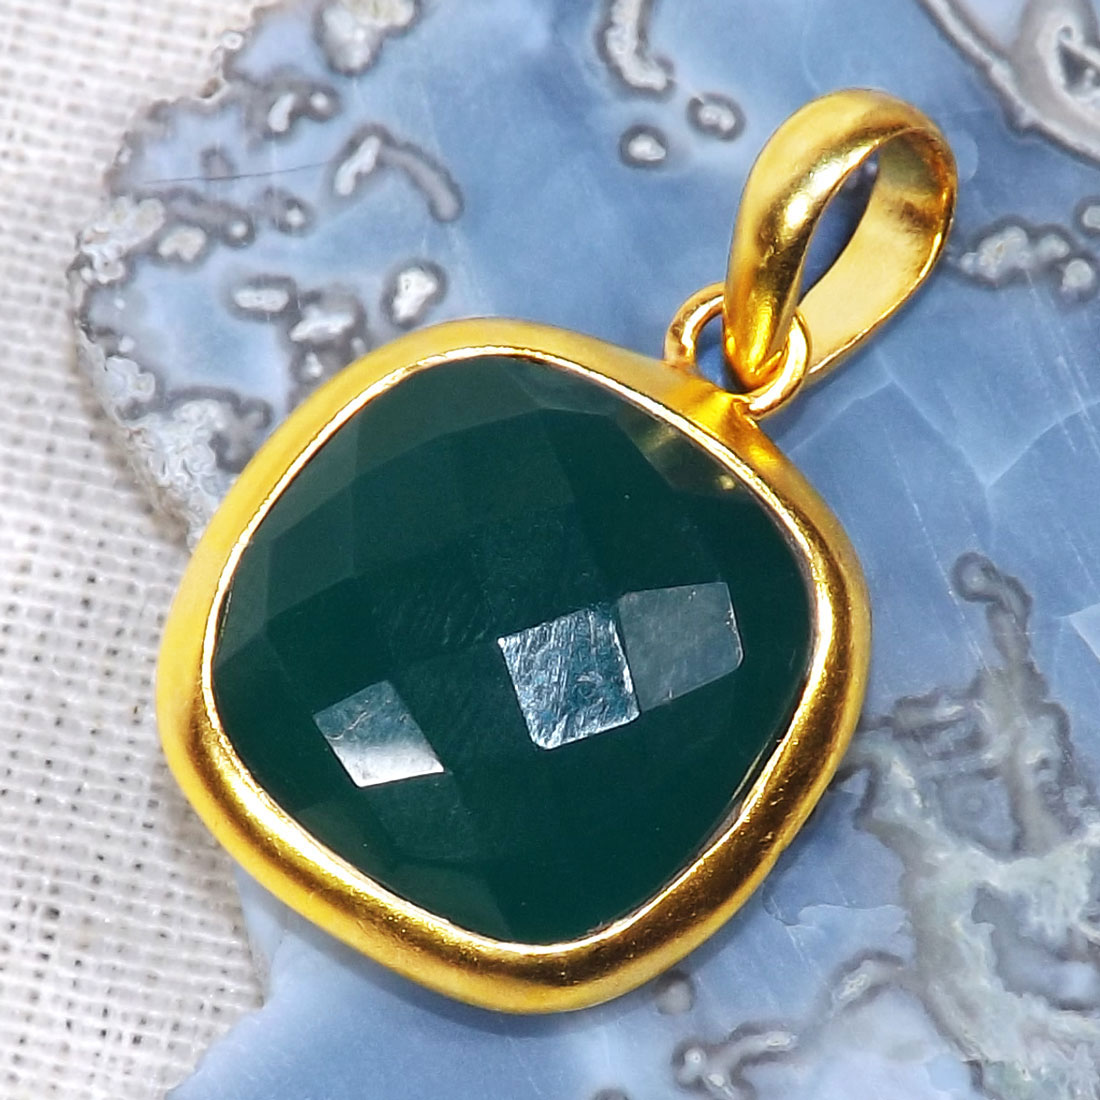 Green Onyx C - BGP999-14TO15mm Cushion Looking Amazing Pendants of 18 Crt Gold